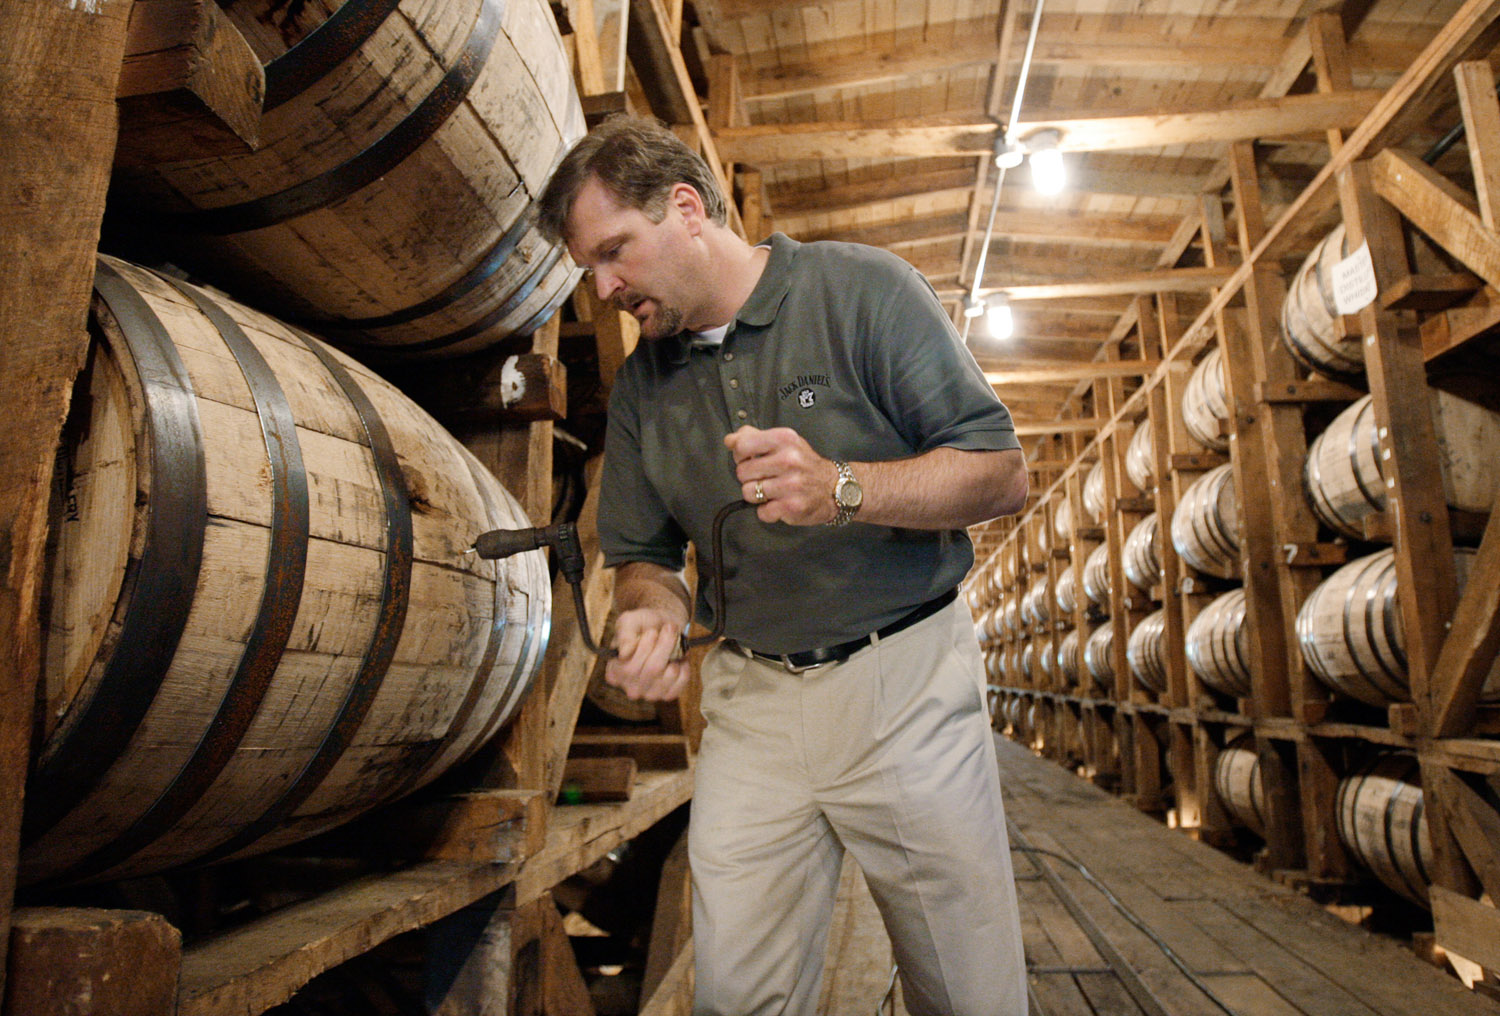 Jeff Arnett, the master distiller at the Jack Daniel Distillery in Lynchburg, Tenn., drills a hole in a barrel of whiskey in one of the aging houses at the distillery, May 20, 2009.